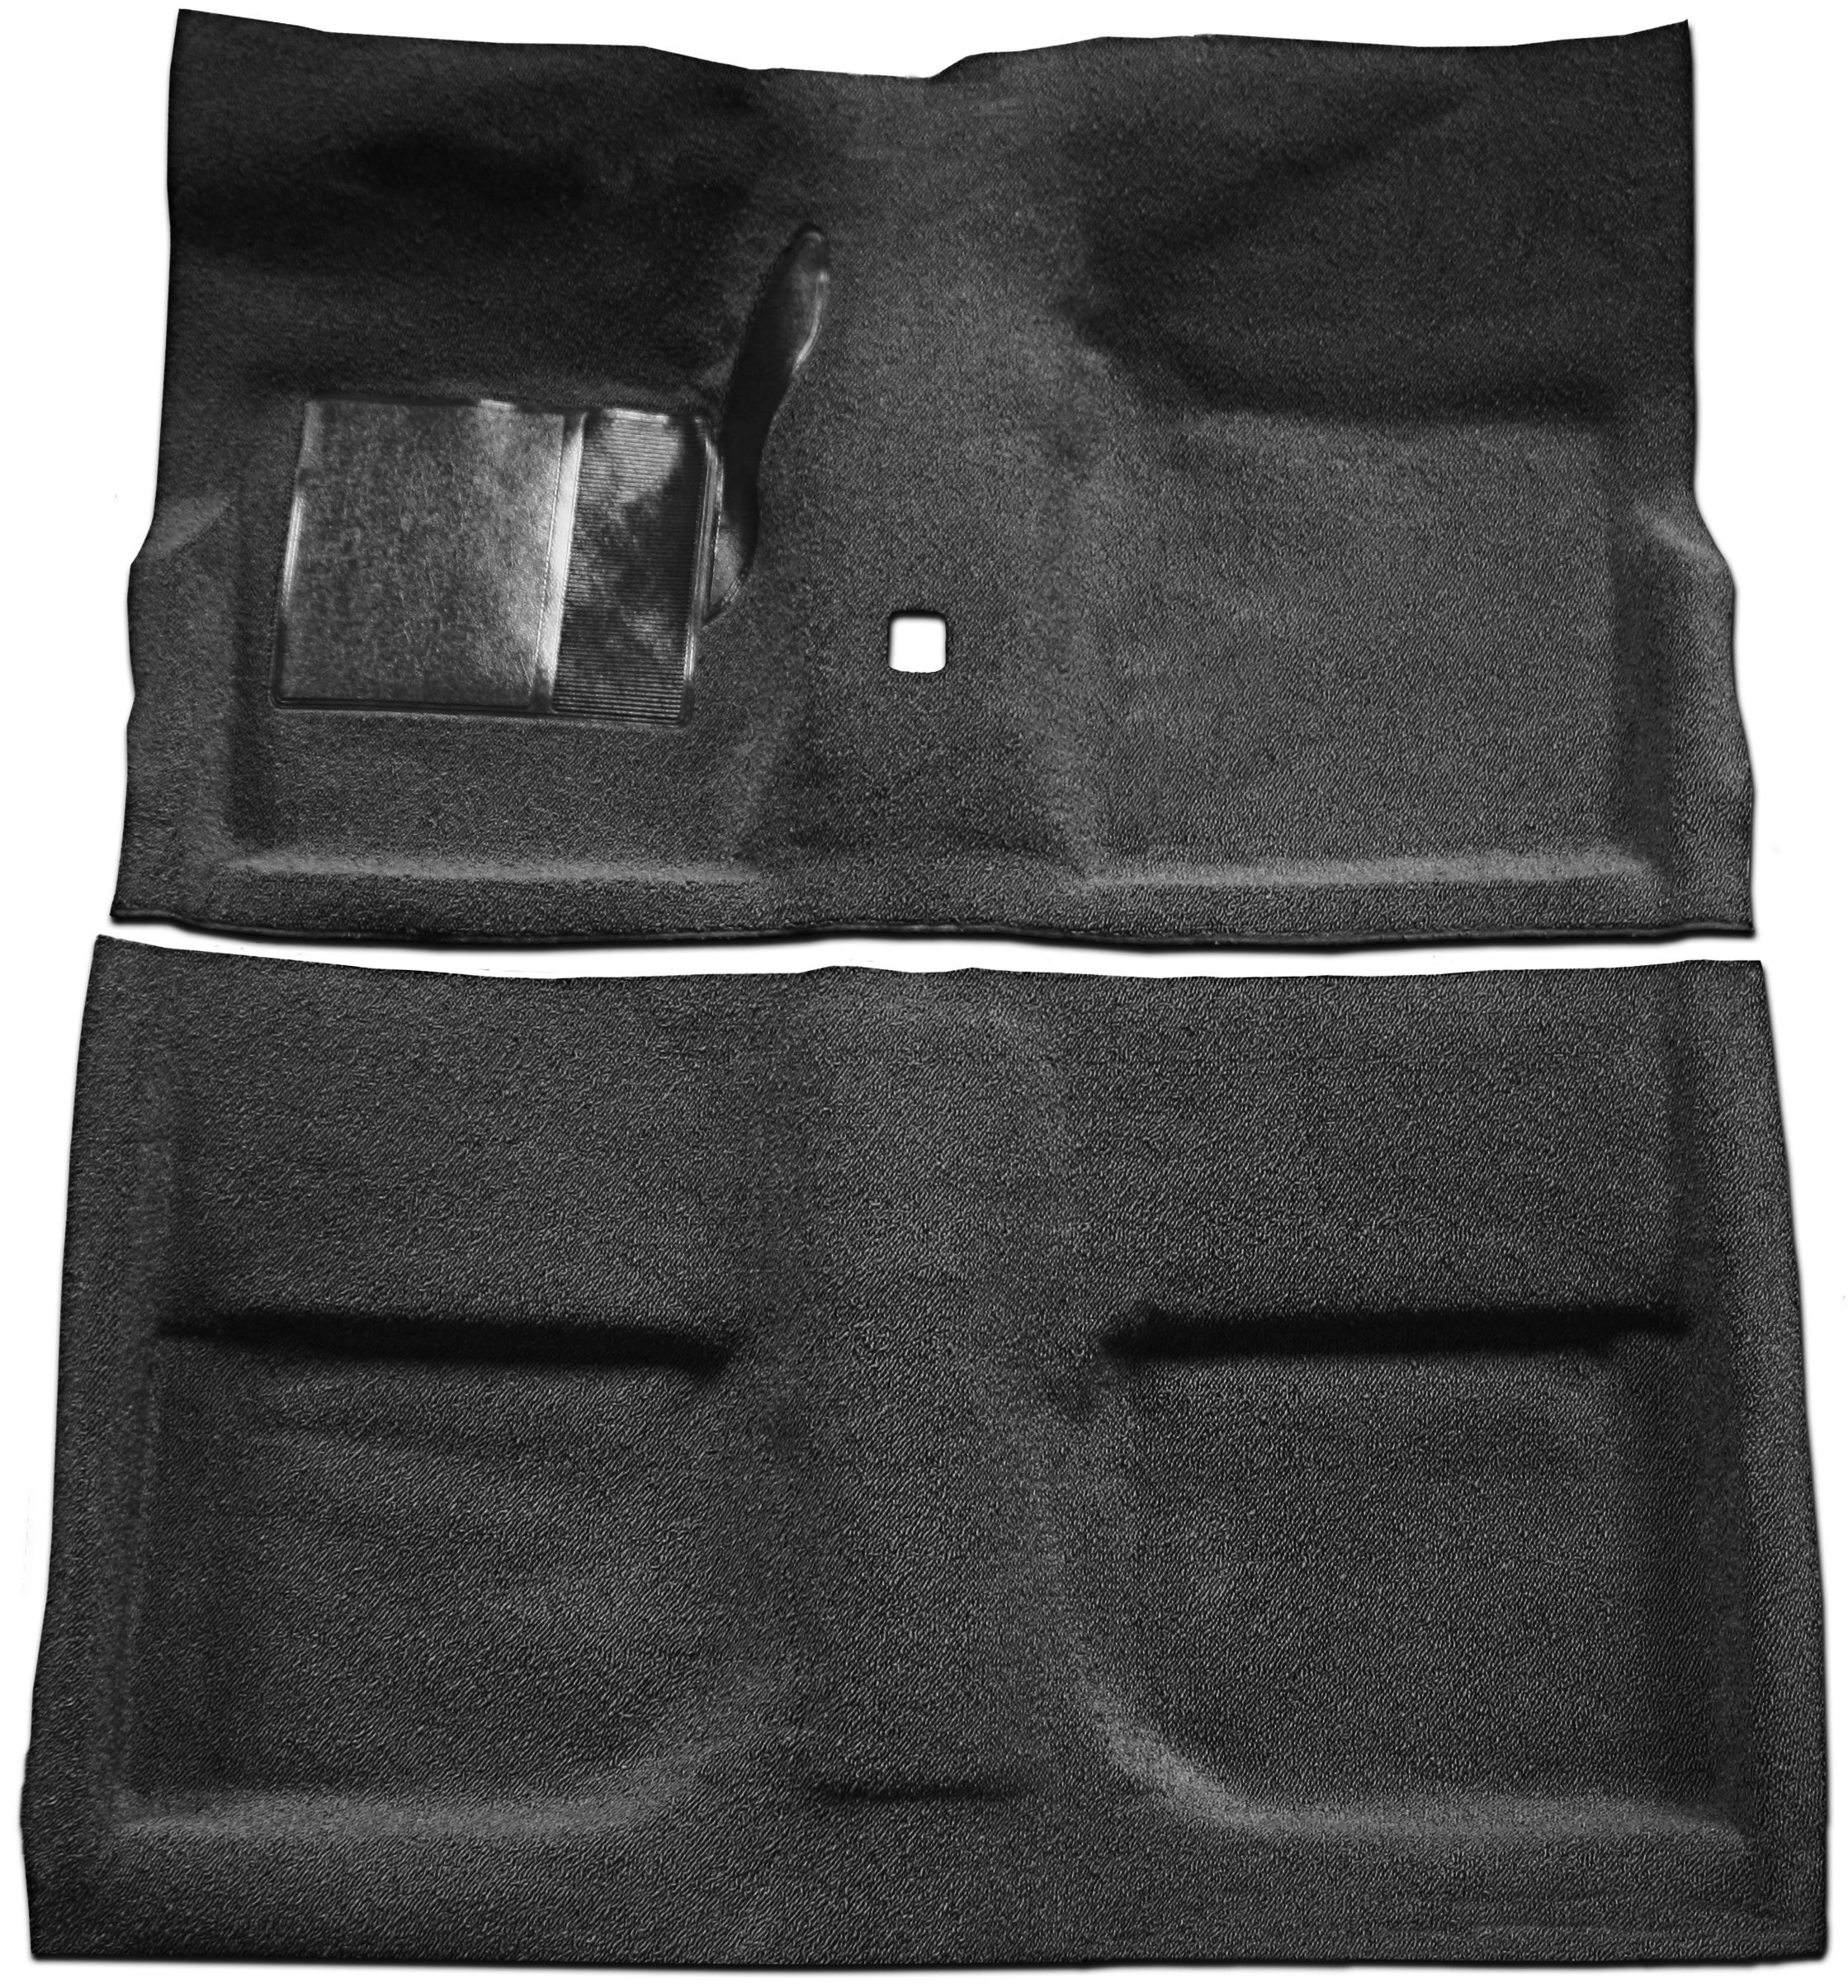 Almost Nothing Can Freshen Up The Interior Of Your Mustang More Than Installing New Carpet This Premium Acc Mass Back Carpet Is M Coupe Mustang Parts Mustang